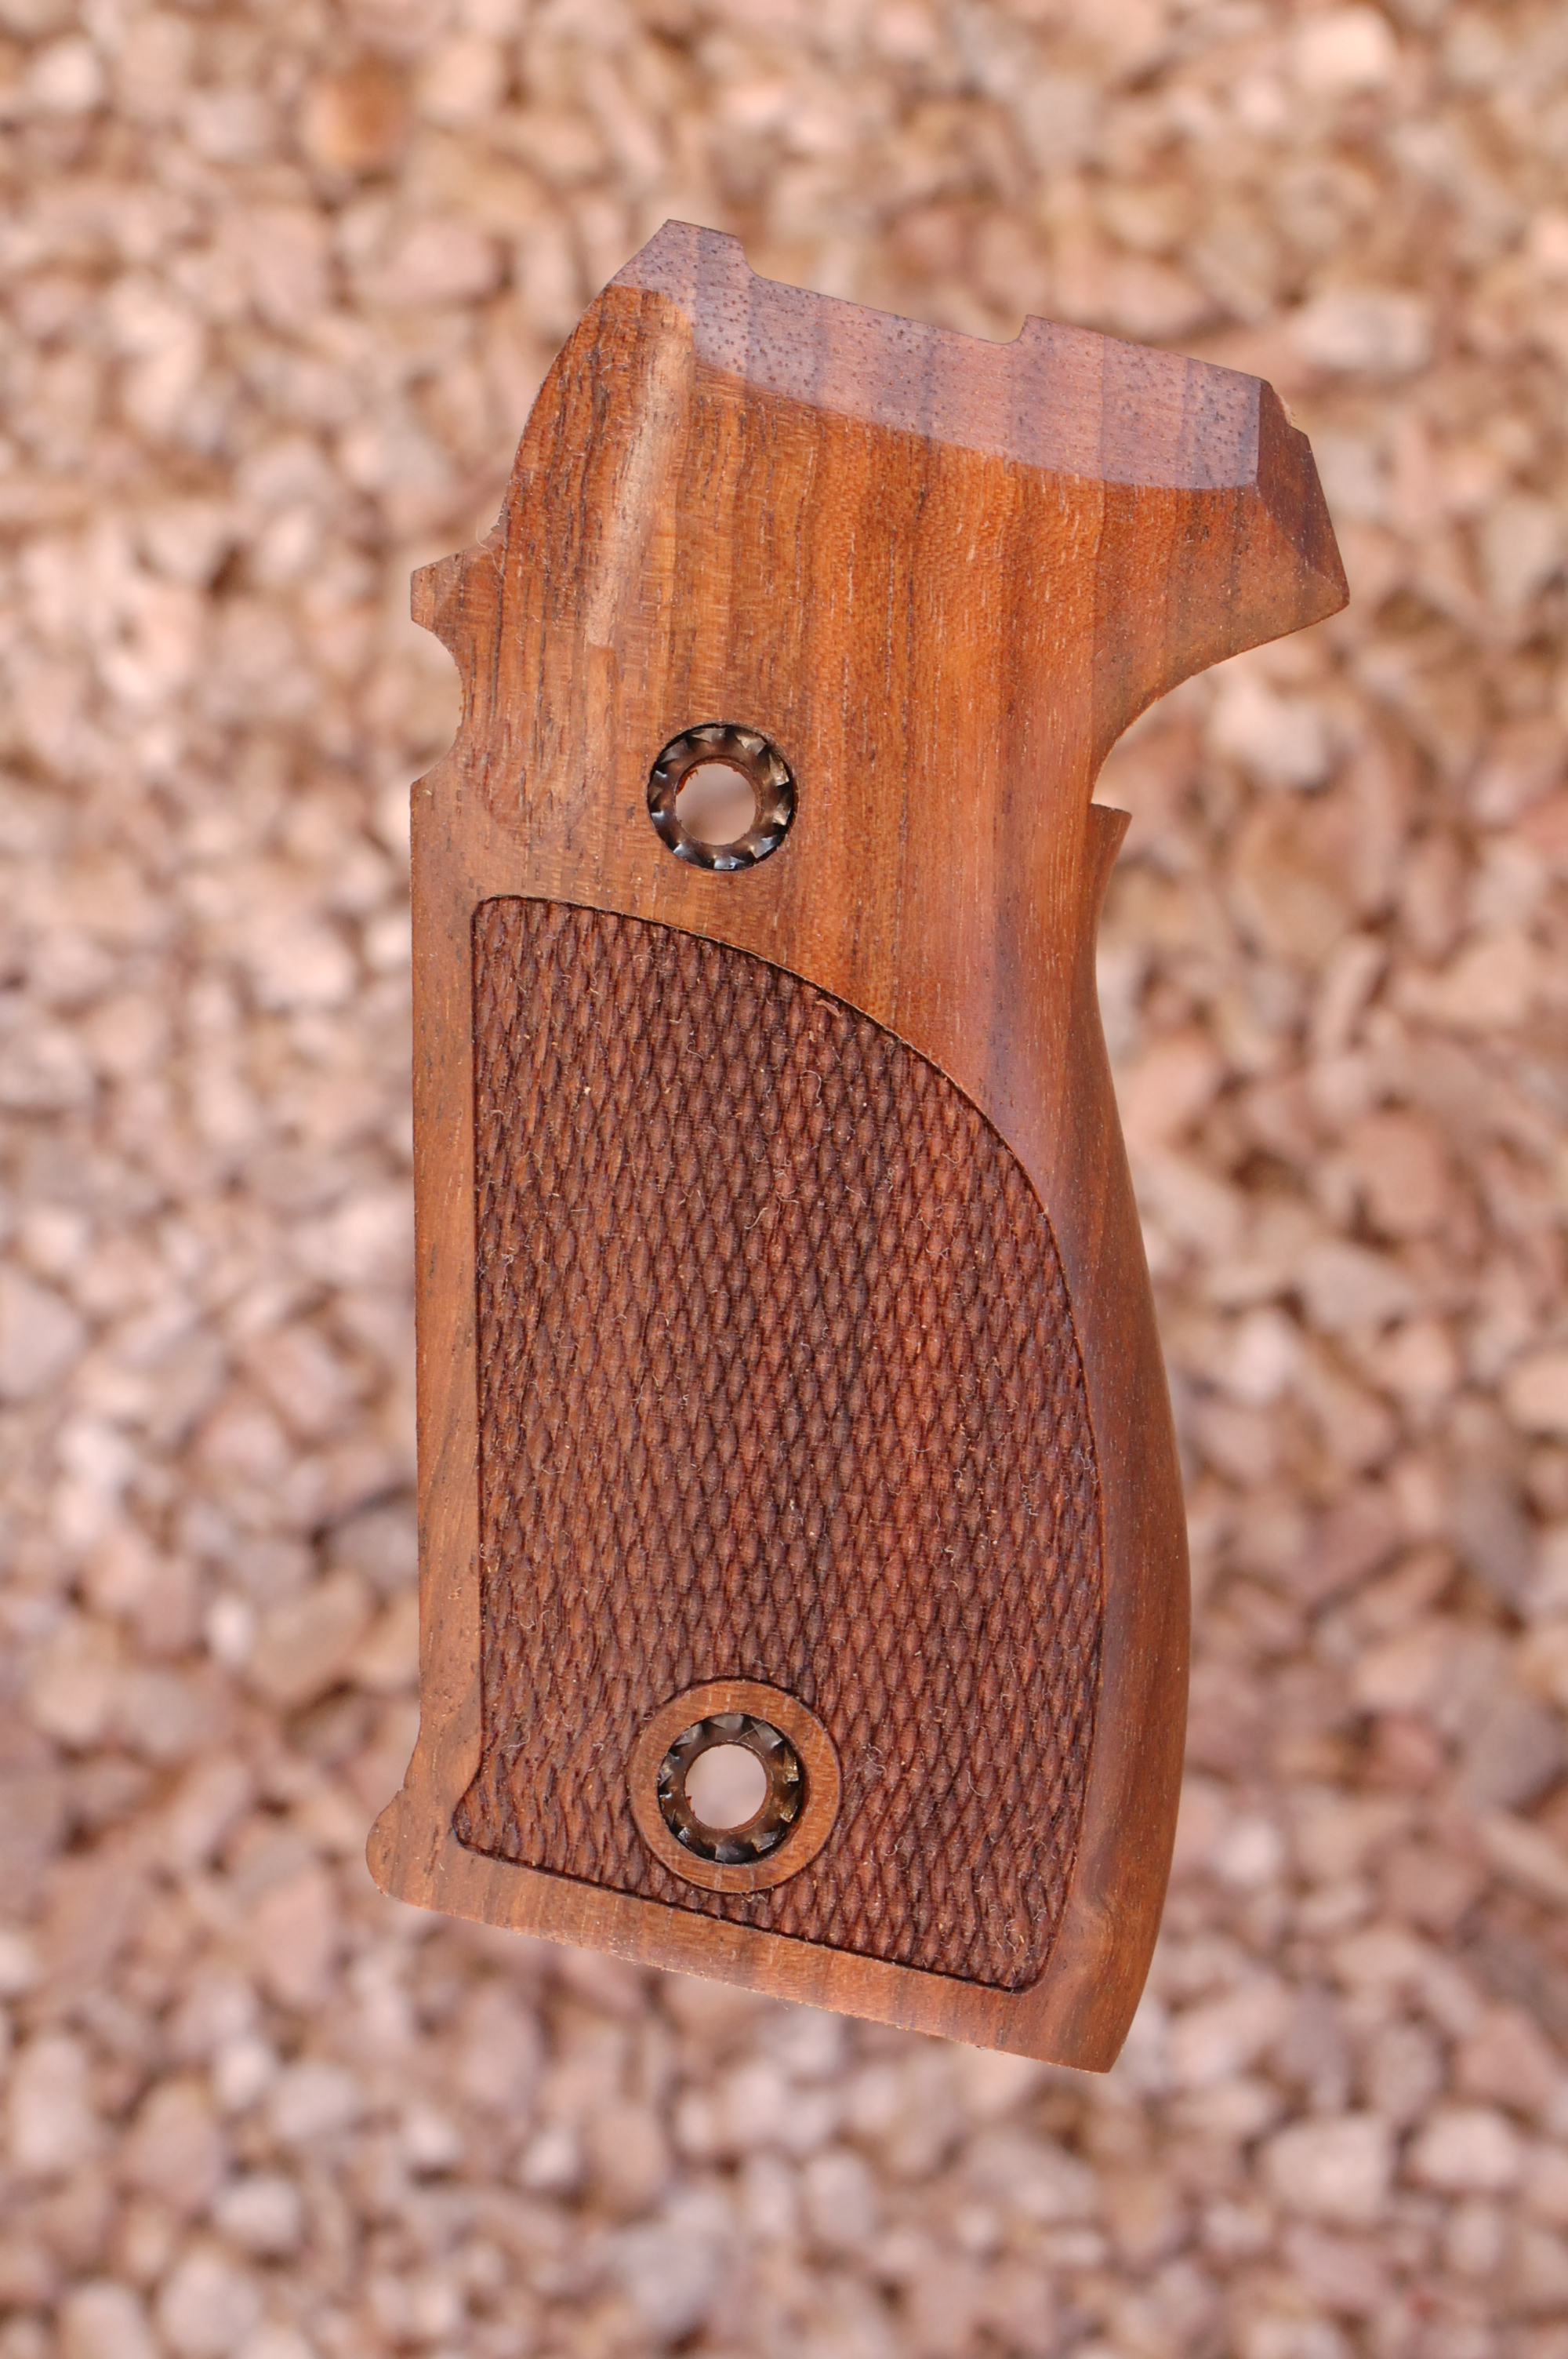 SIG P225/P6 GRIPS (checkered) - full size